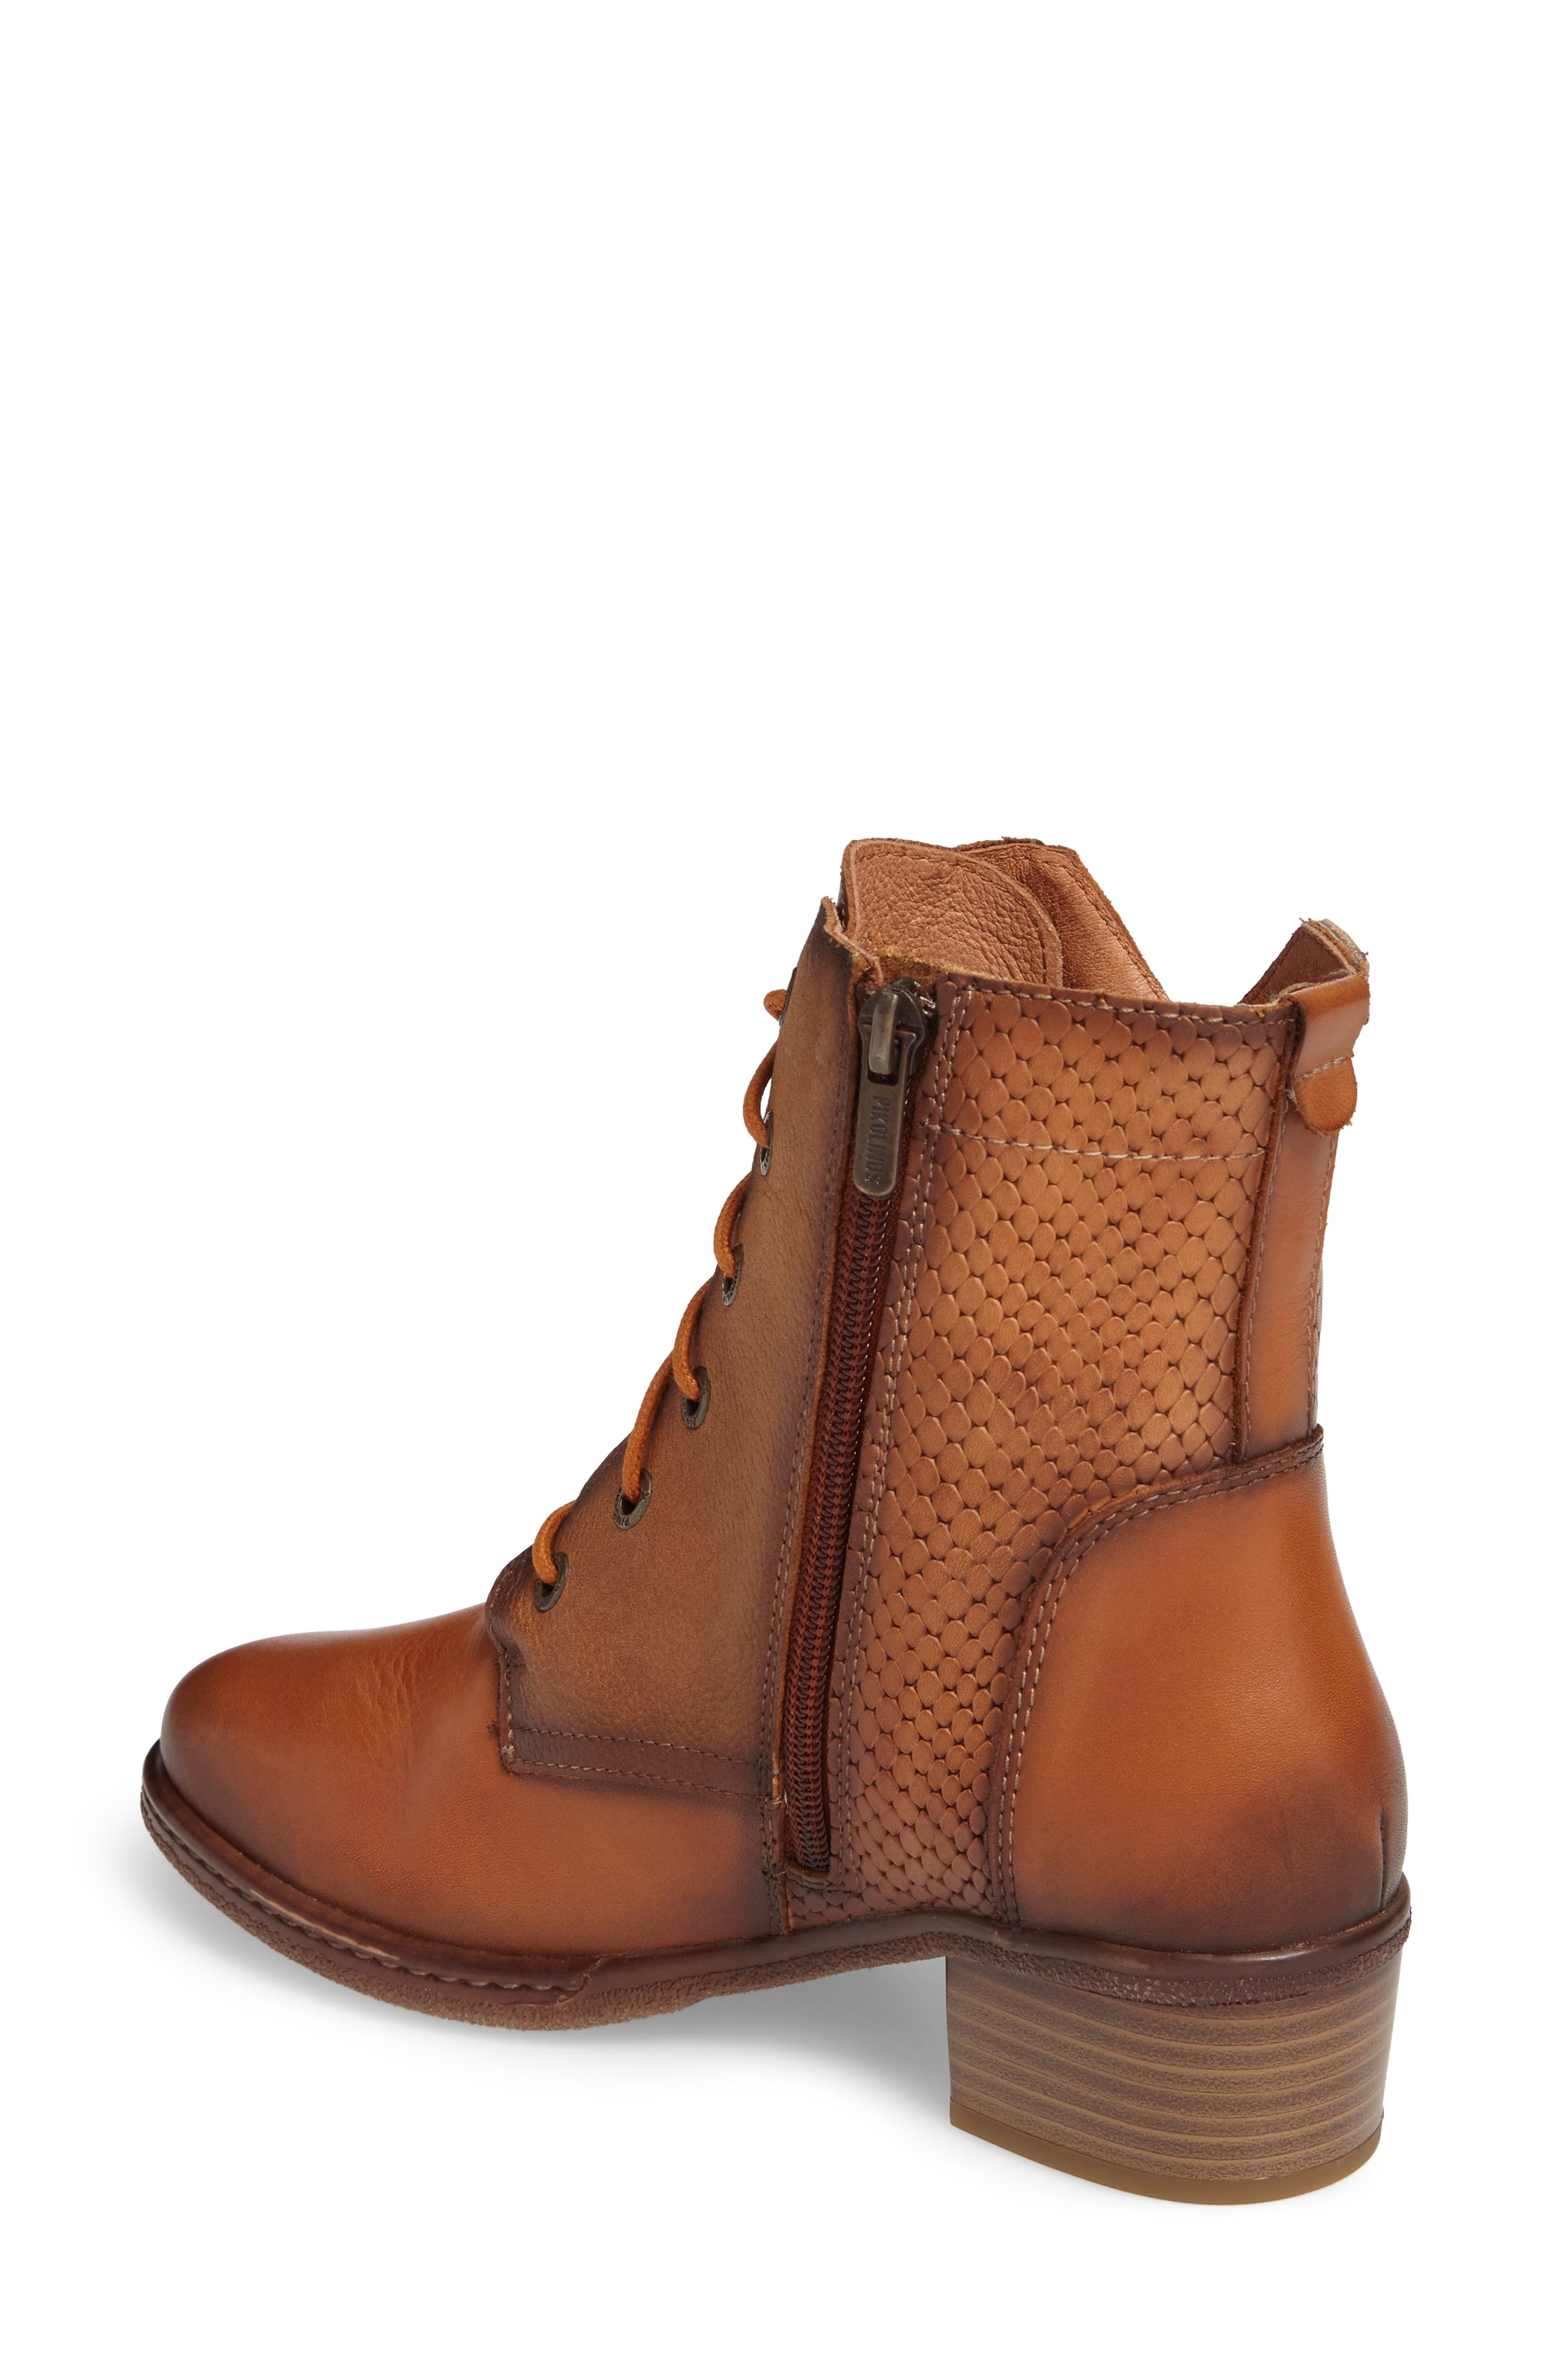 Zaragoza Water Resistant Lace-Up Boot,                             Alternate thumbnail 2, color,                             207